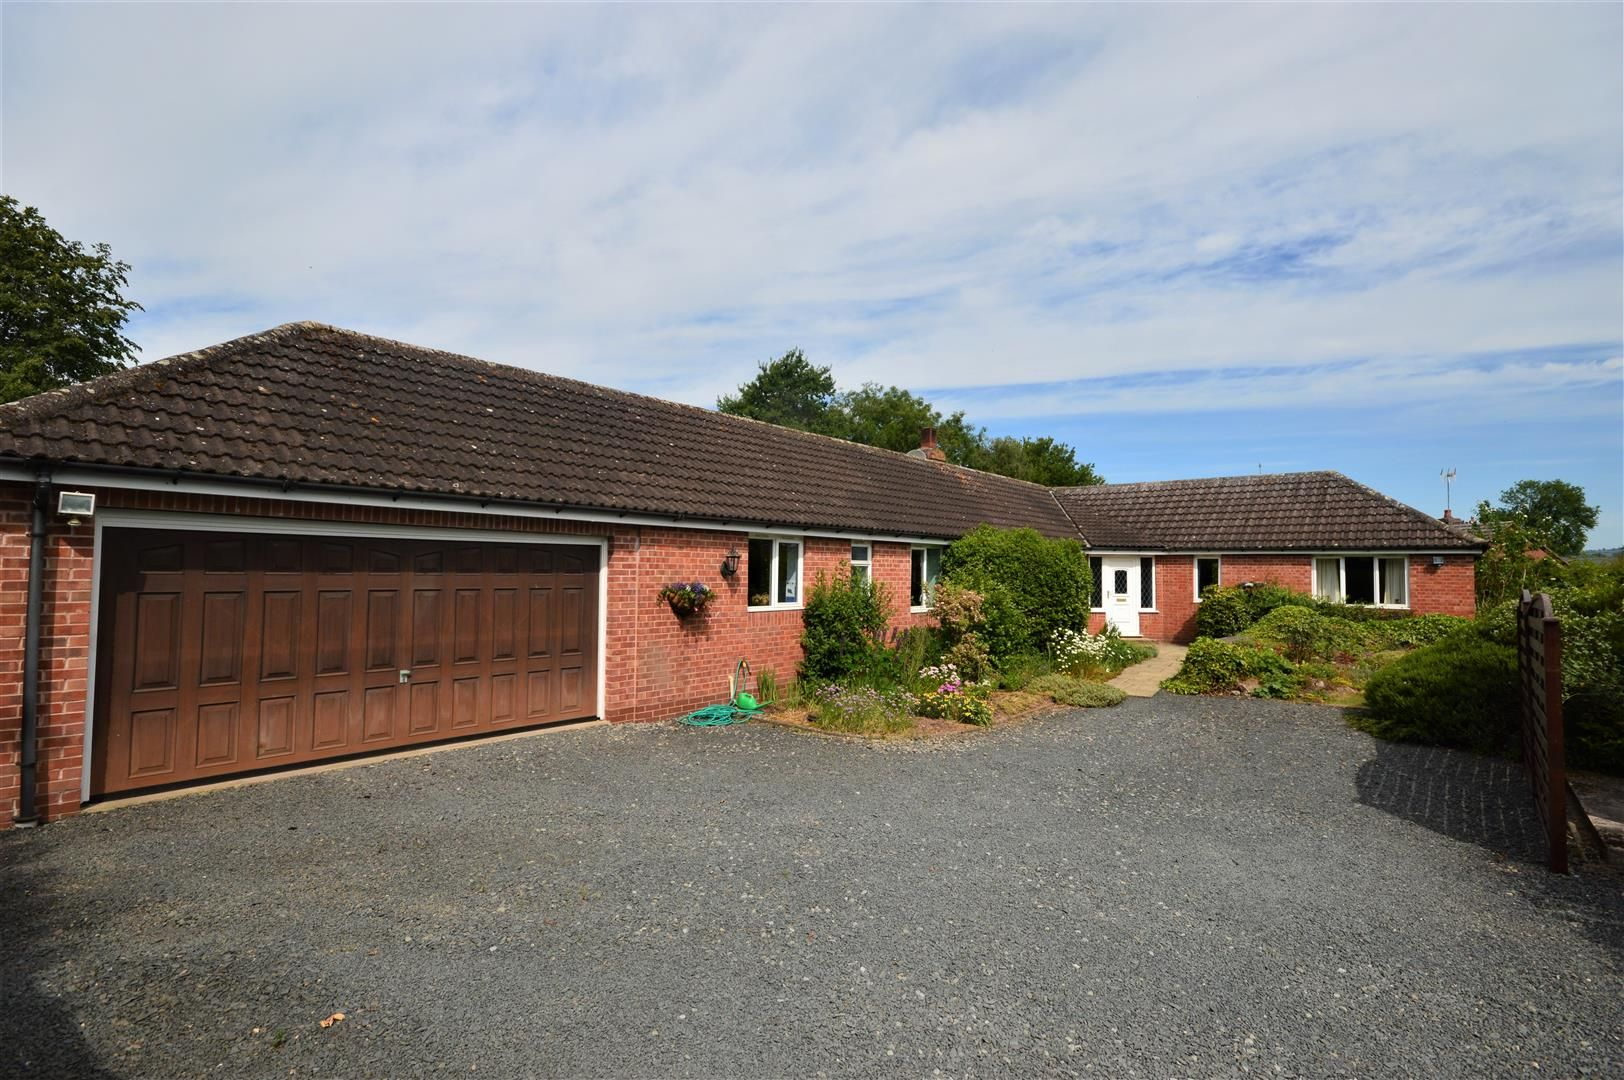 4 bed detached-bungalow for sale in Luston, HR6